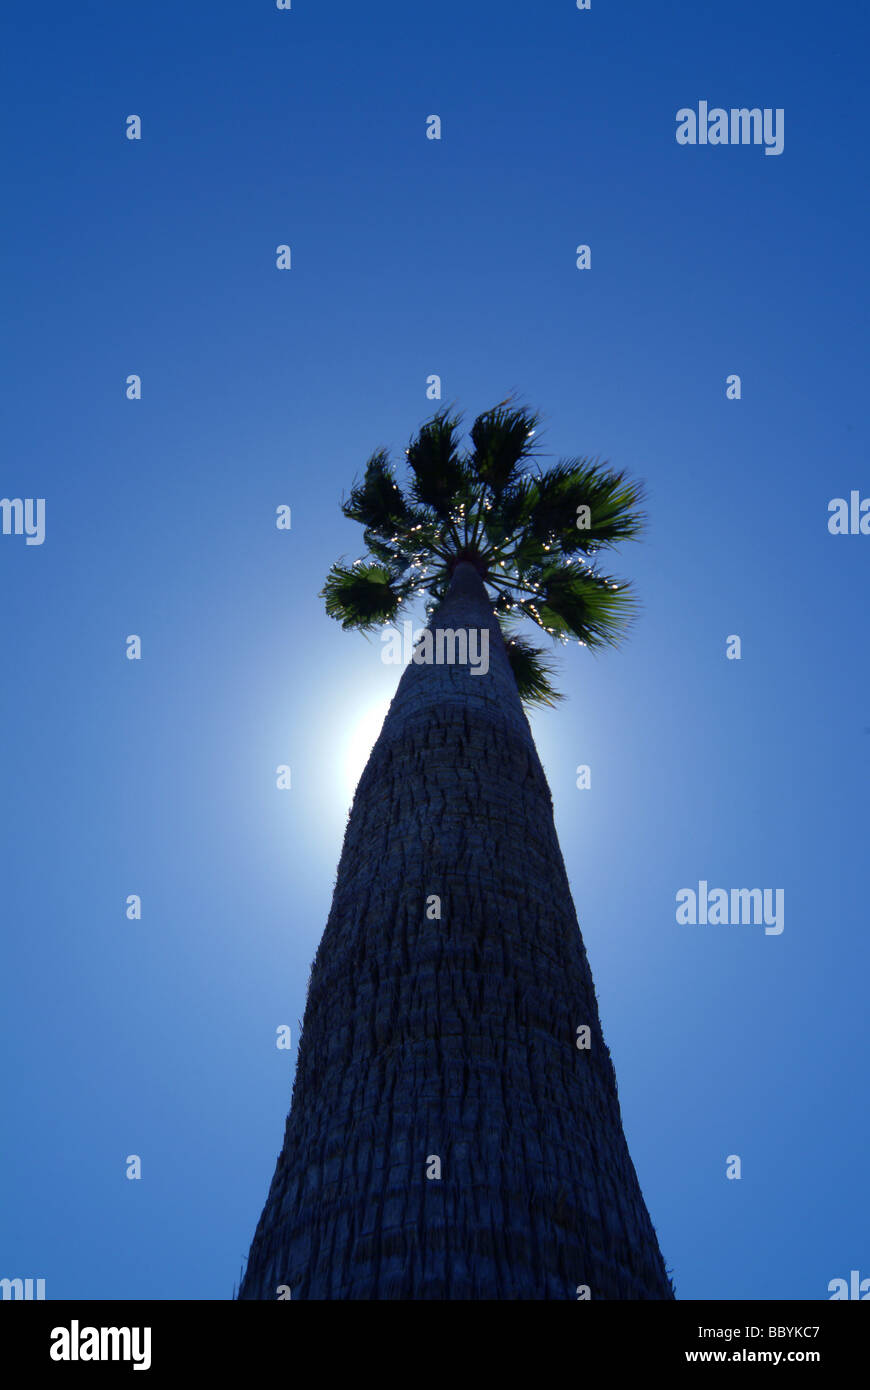 Tropical palm tree against the sun - Stock Image